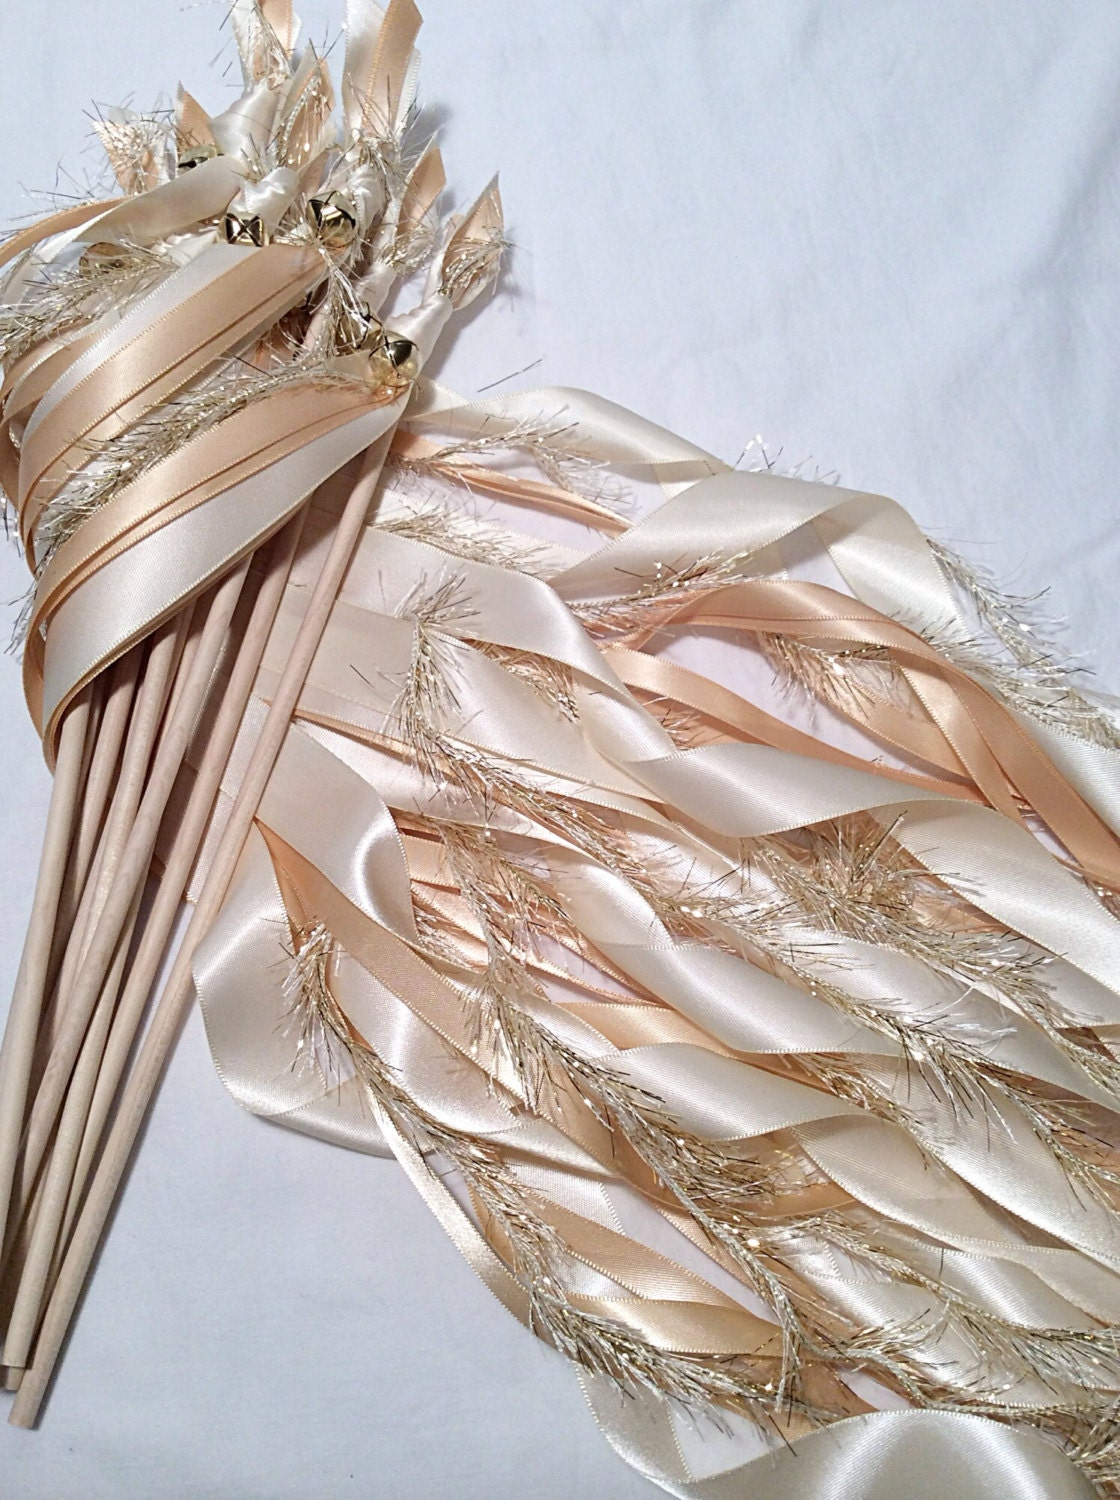 100 wedding ribbon wands ivory and toffee with metallic gold. Black Bedroom Furniture Sets. Home Design Ideas